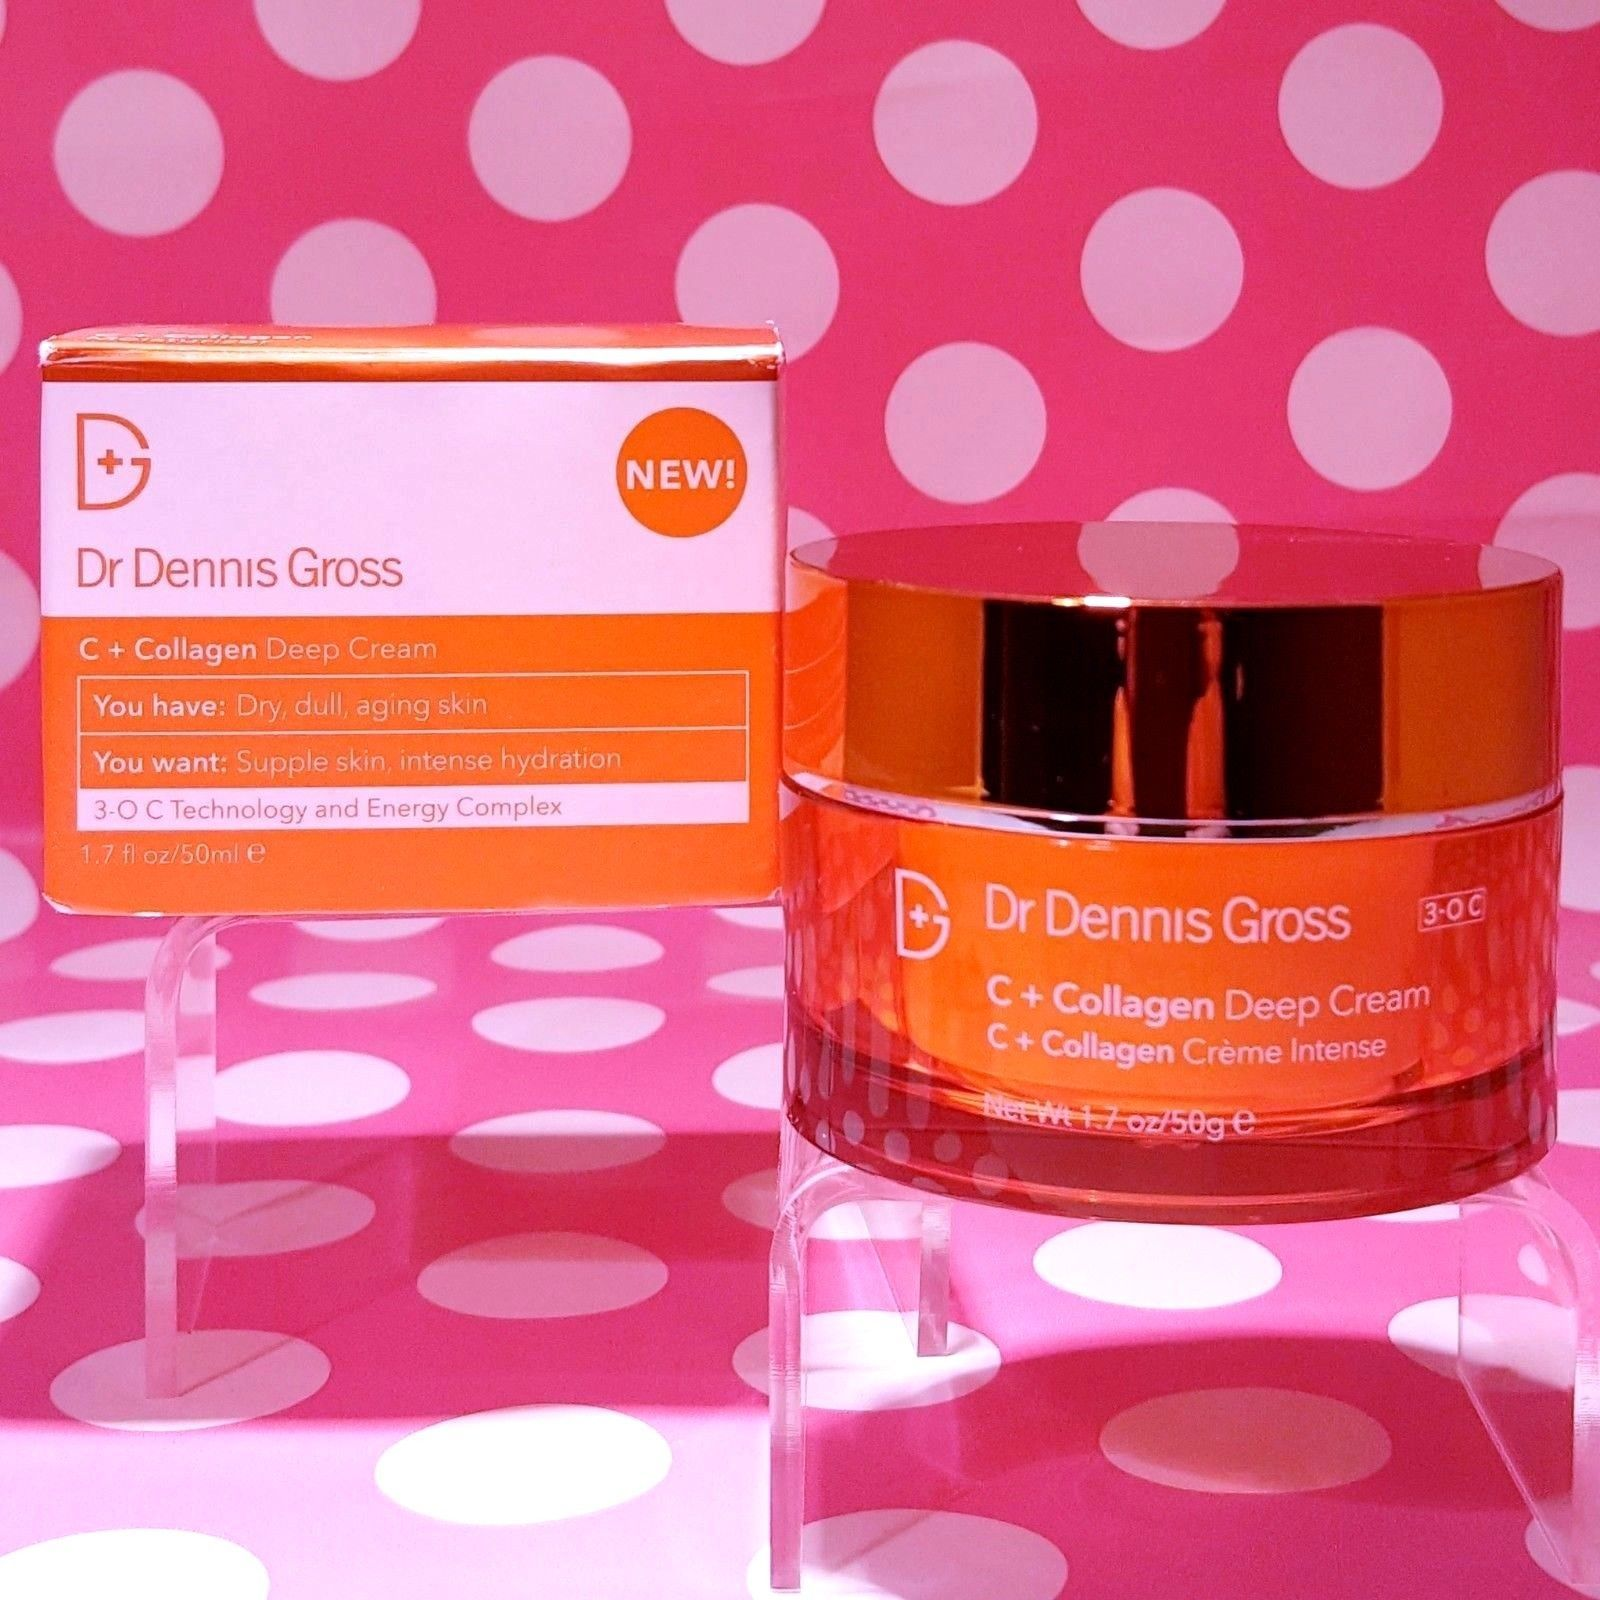 Dr Dennis Gross C + Collagen Deep Cream 1.7oz FULL SIZE! NEW BOXED!